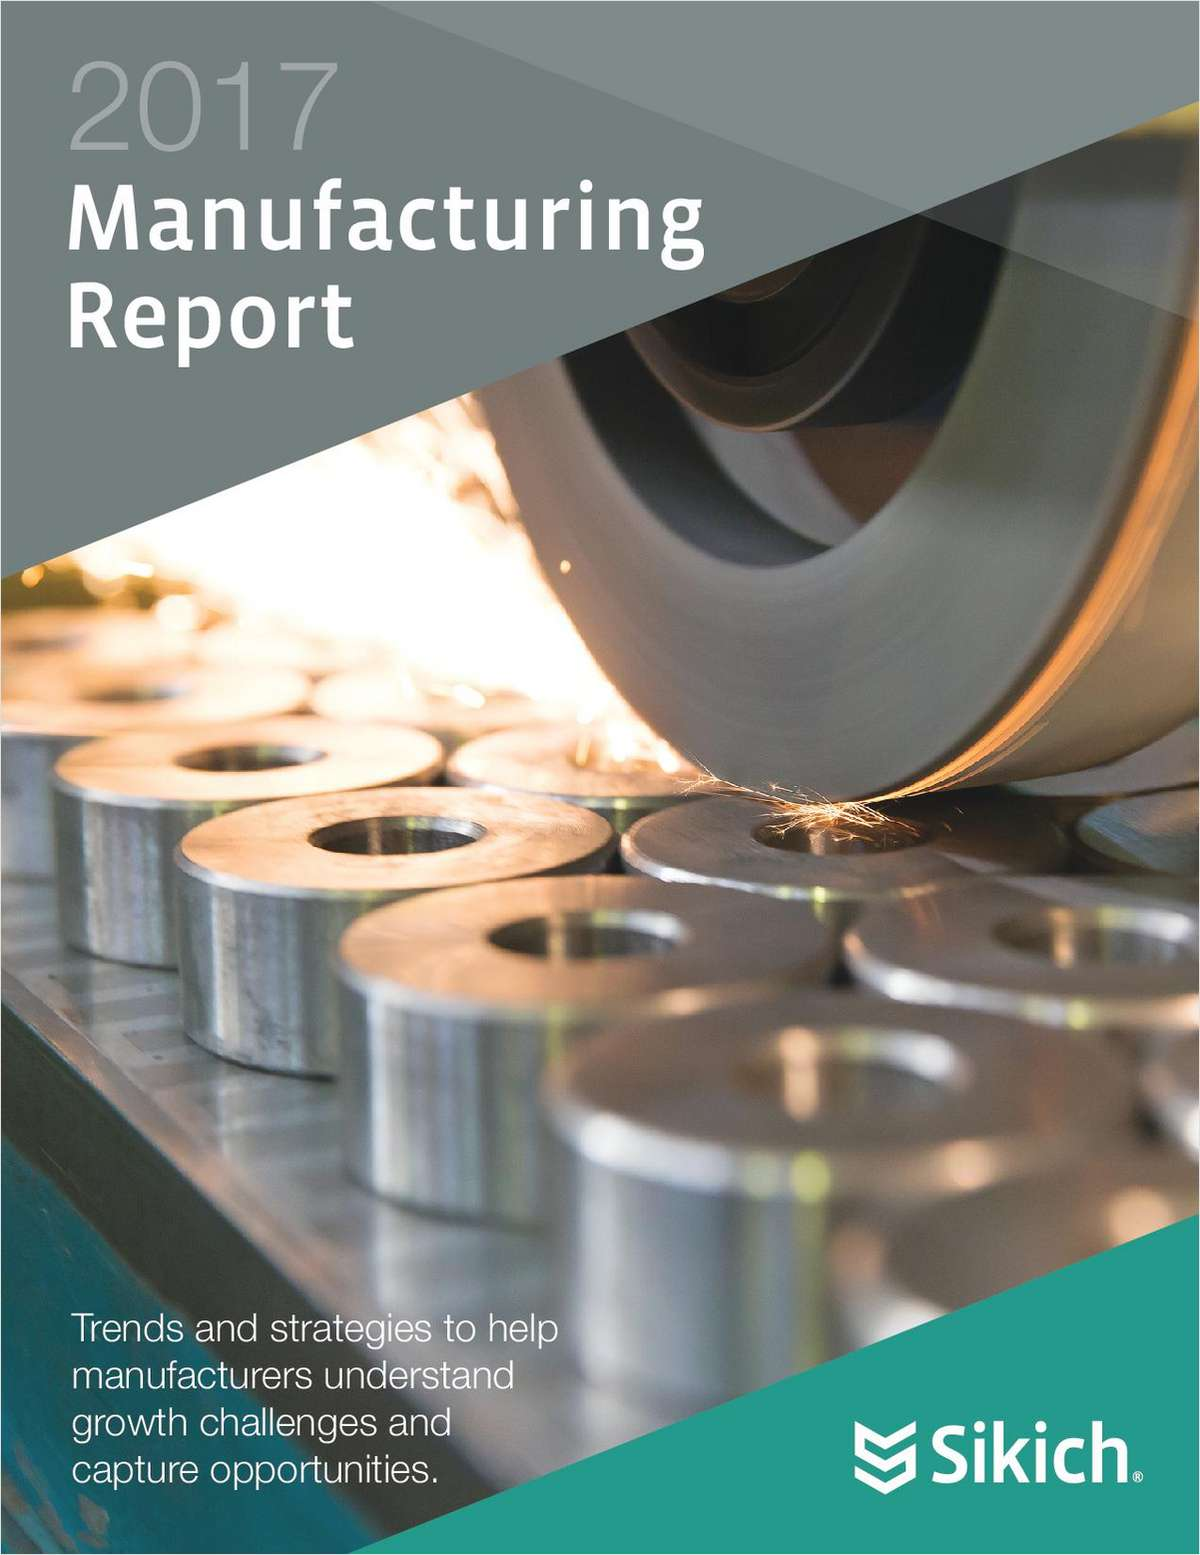 2017 Manufacturing Report